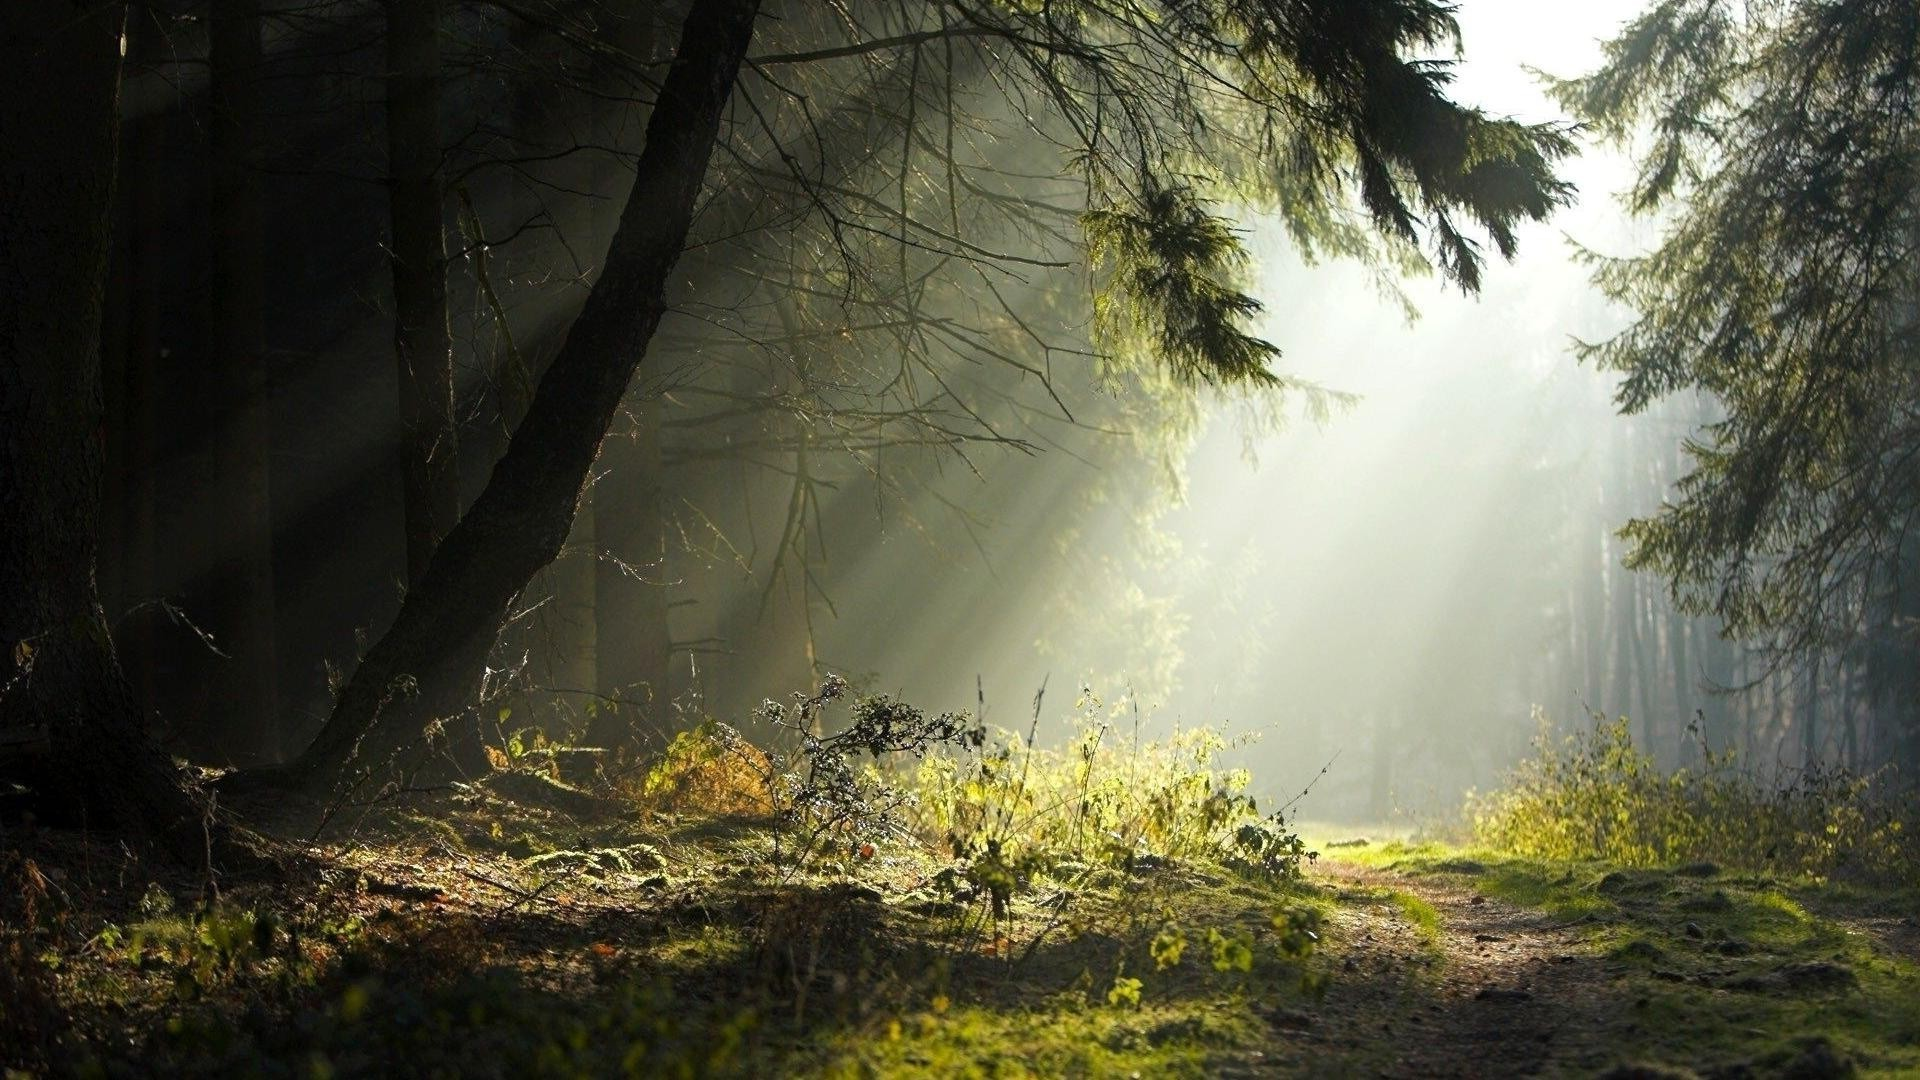 Sunlight is streaming in the thick of the forest